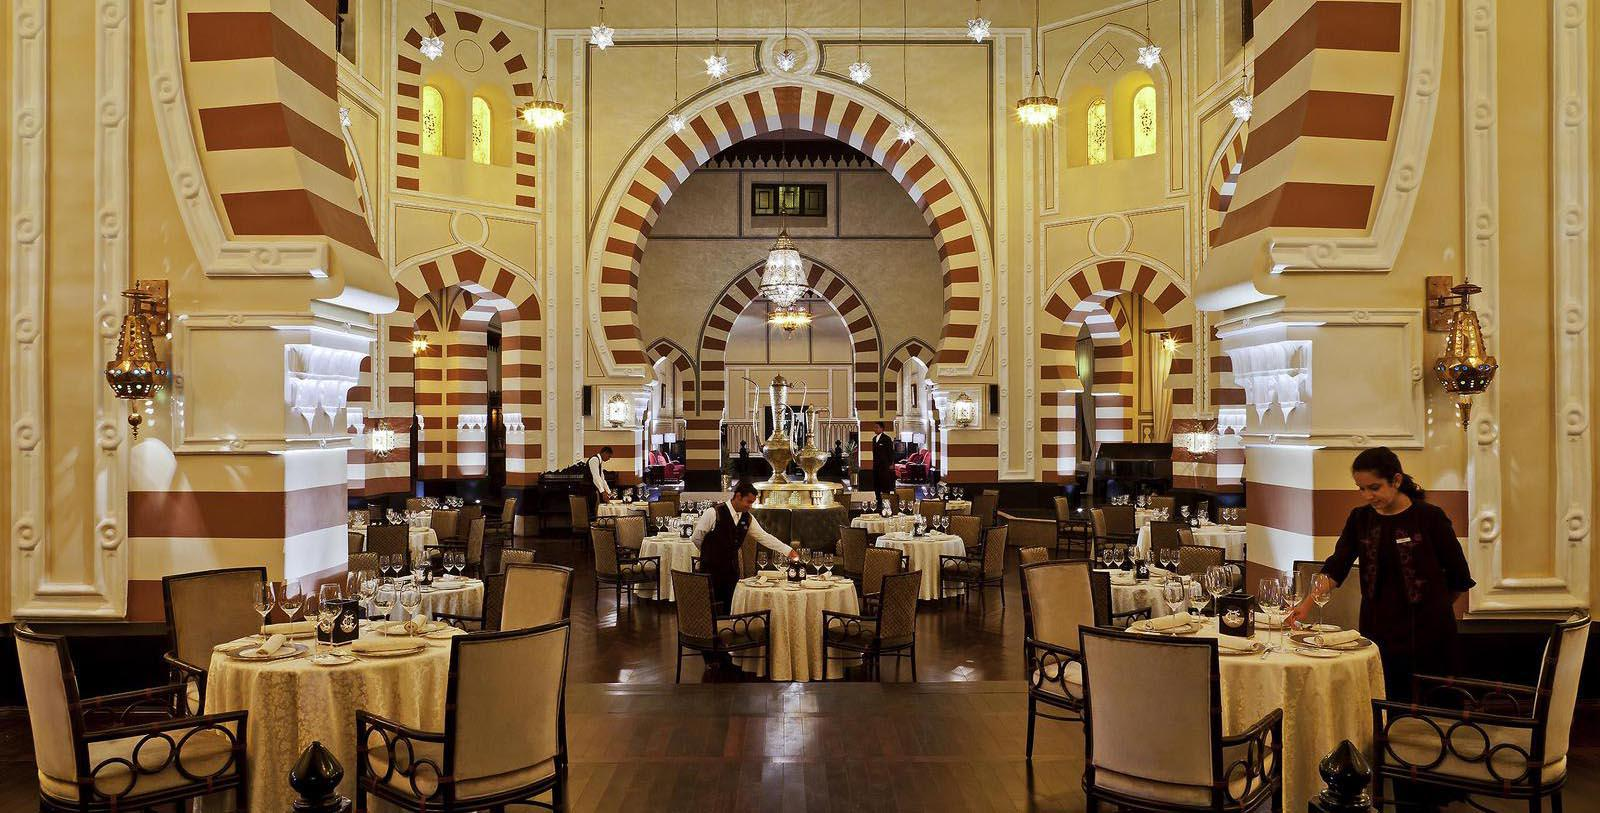 Image of Dining Room at 1902 at Sofitel Legend Old Cataract Aswan, 1899, Member of Historic Hotels Worldwide, in Aswan, Egypt, Taste